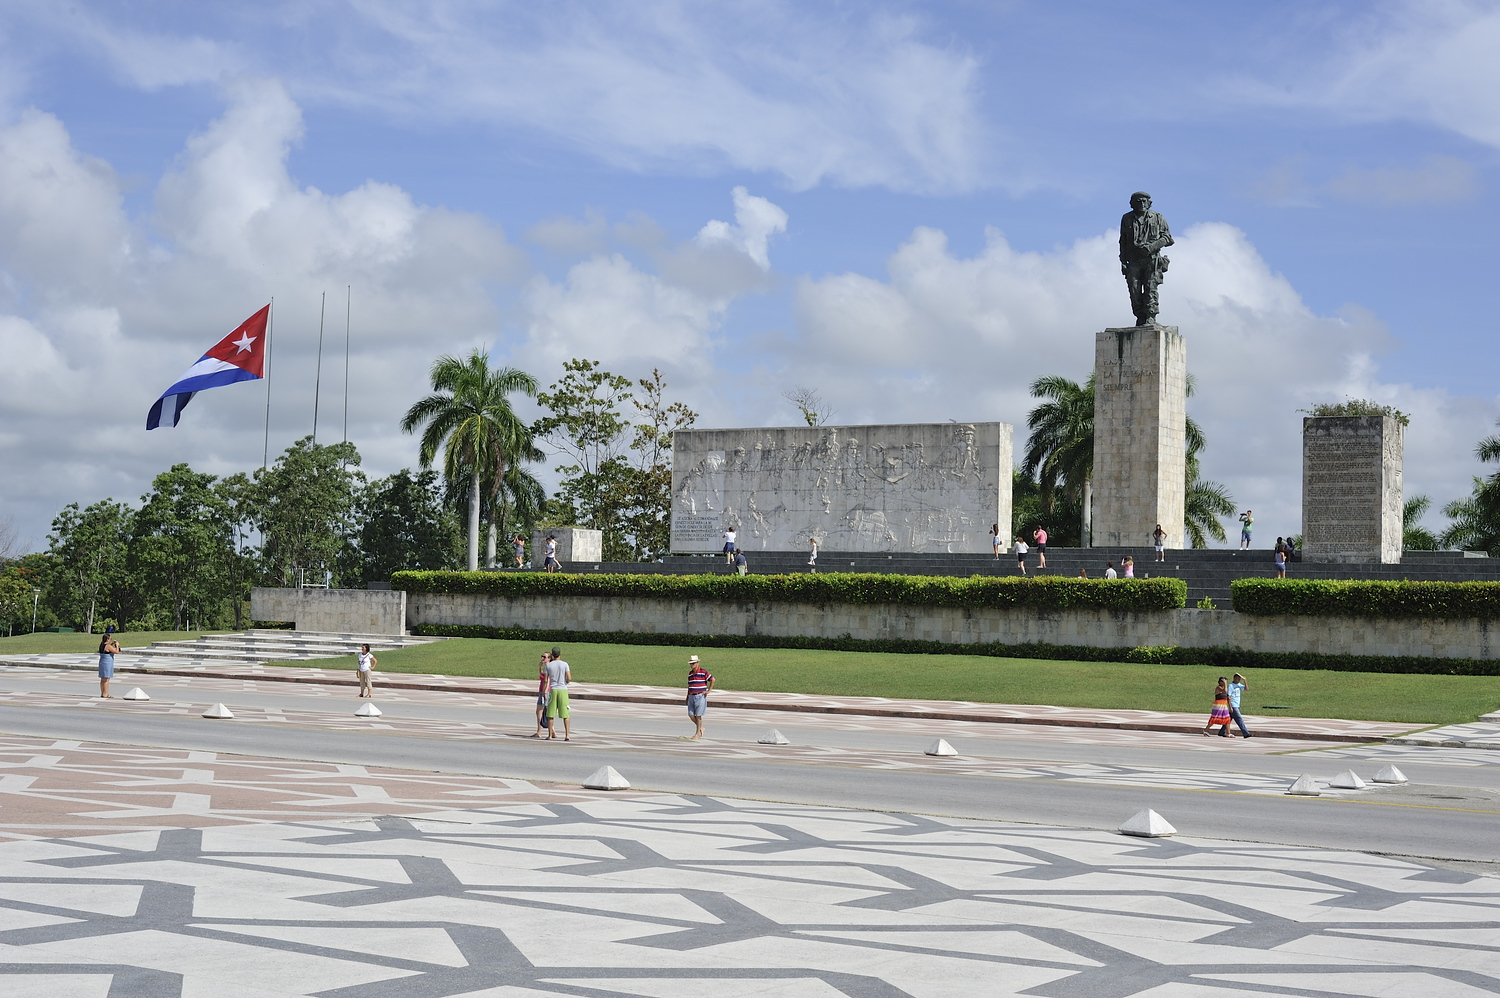 The Che Mausoleum and Monument in Santa Clara Cuba is a popular tourist attraction.